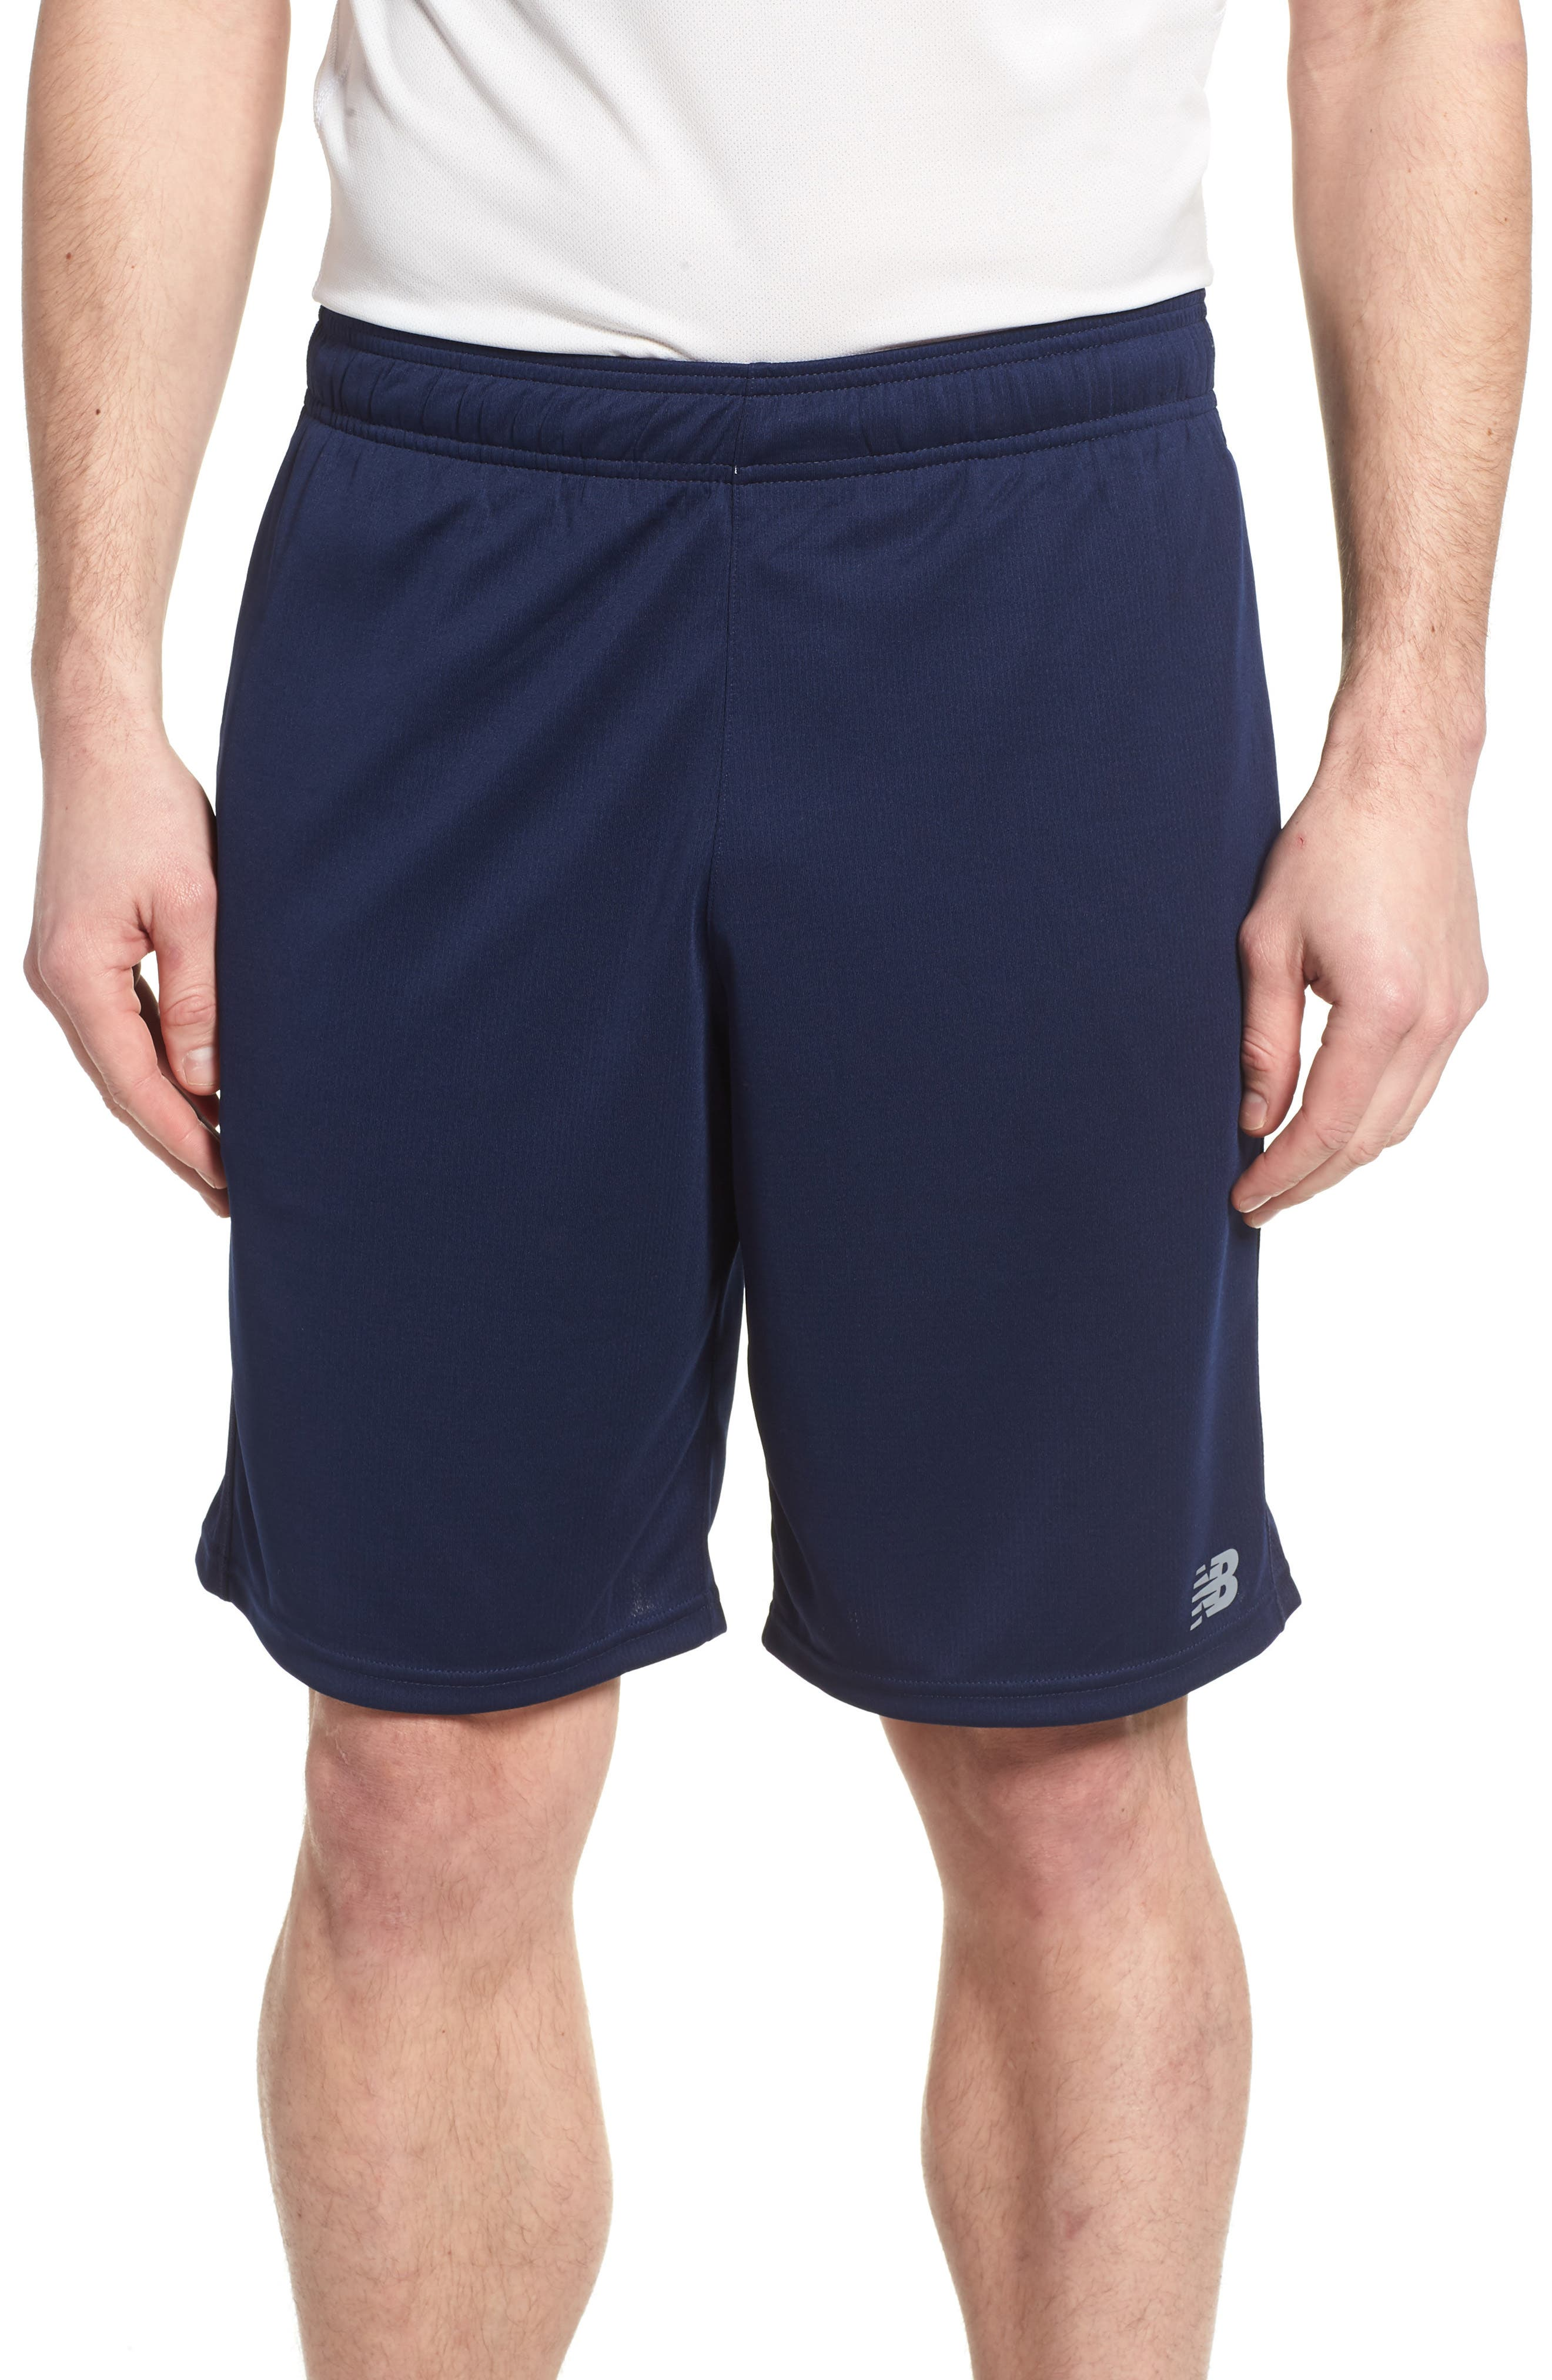 Versa Shorts,                             Main thumbnail 1, color,                             PIGMENT